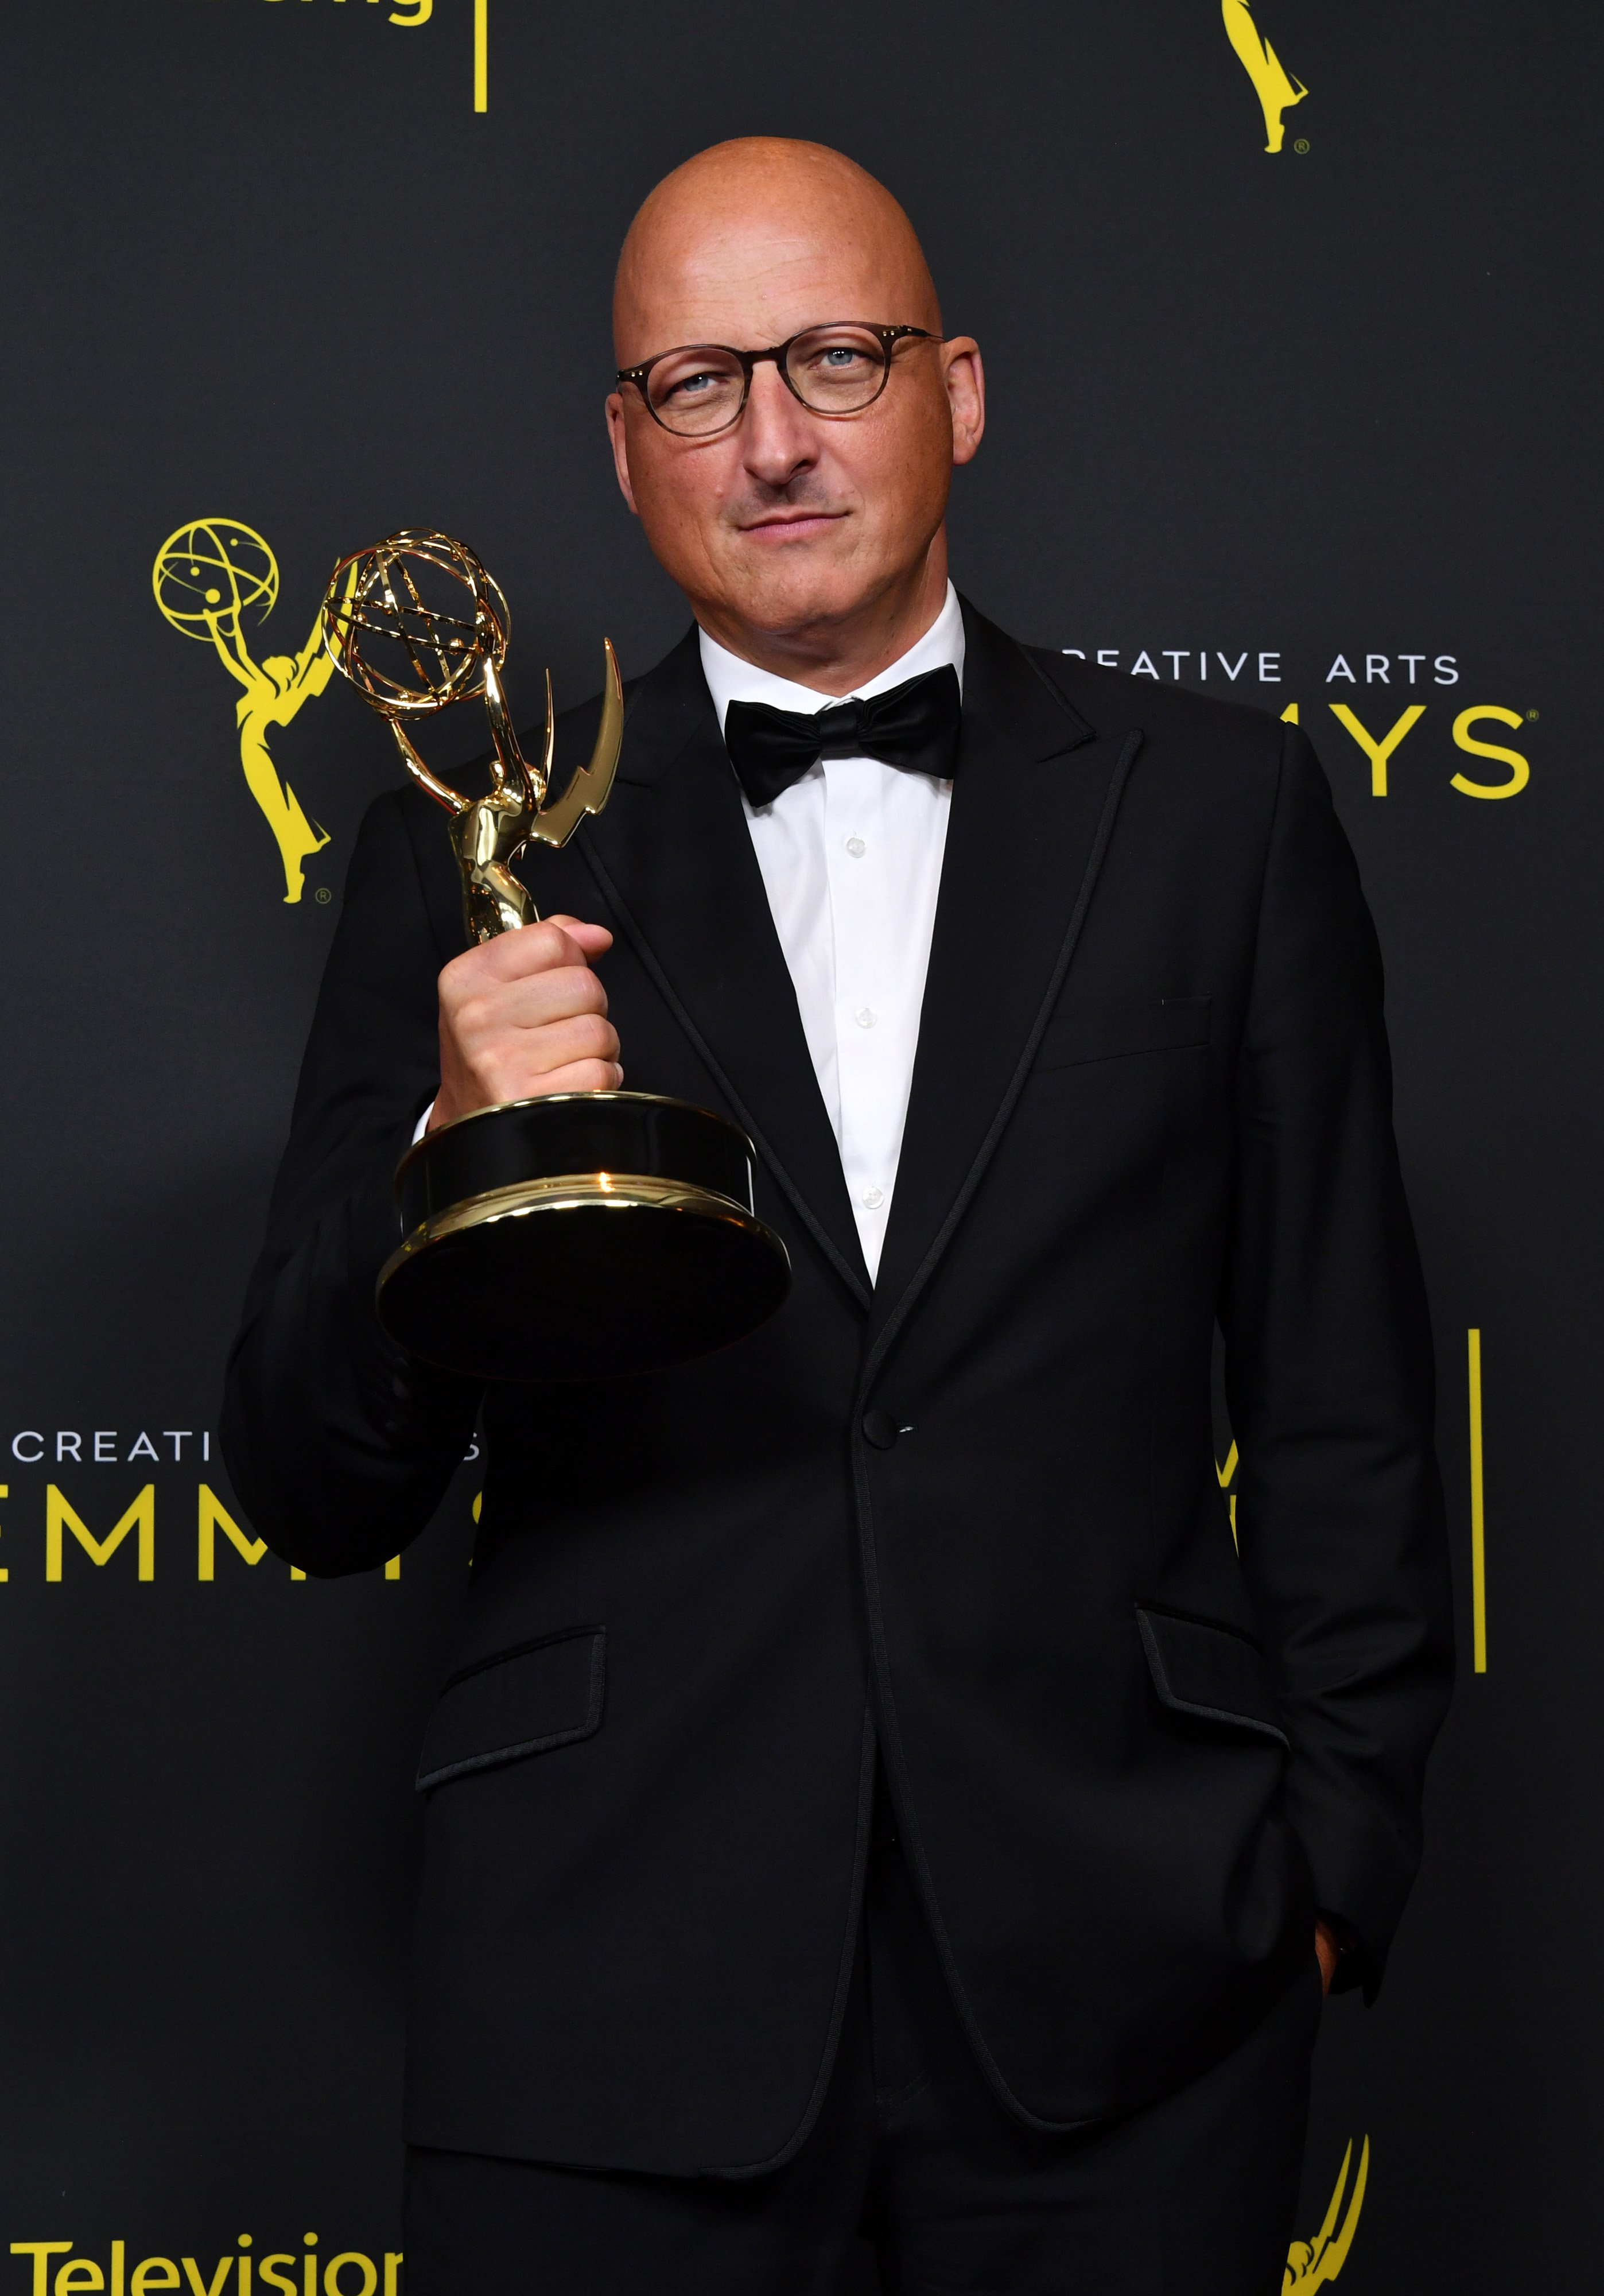 Dan Reed at the Creative Arts Emmy Awards on Sept. 14, 2019 in California | Photo: Getty Images